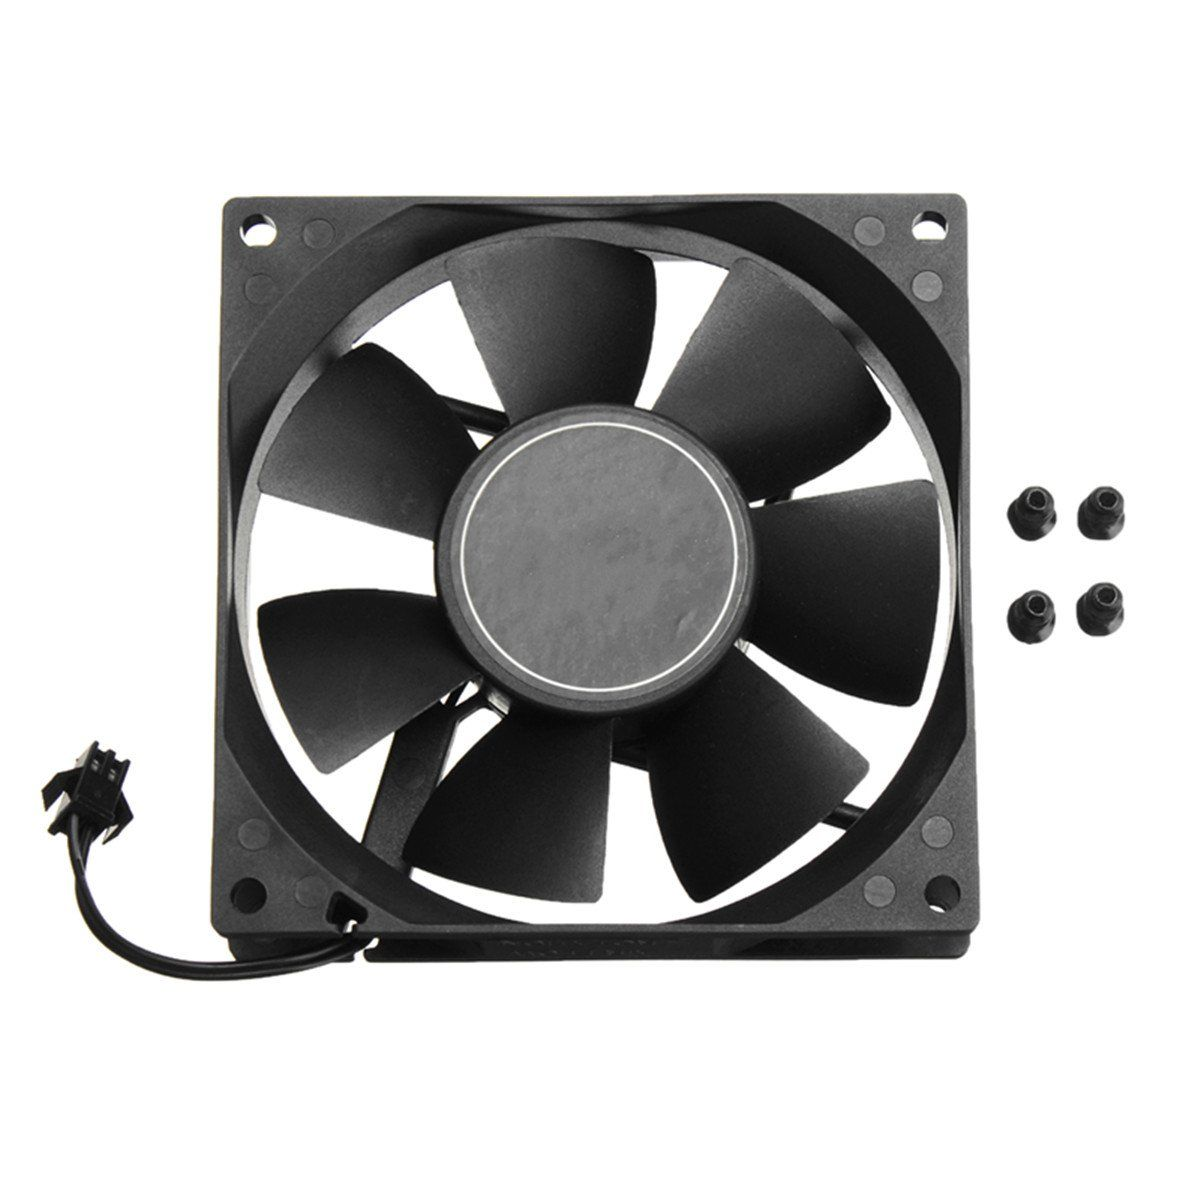 9cm 12v 2 5 Pin Computer Pc Cooling Fan Cpu Cooler Radiator Two